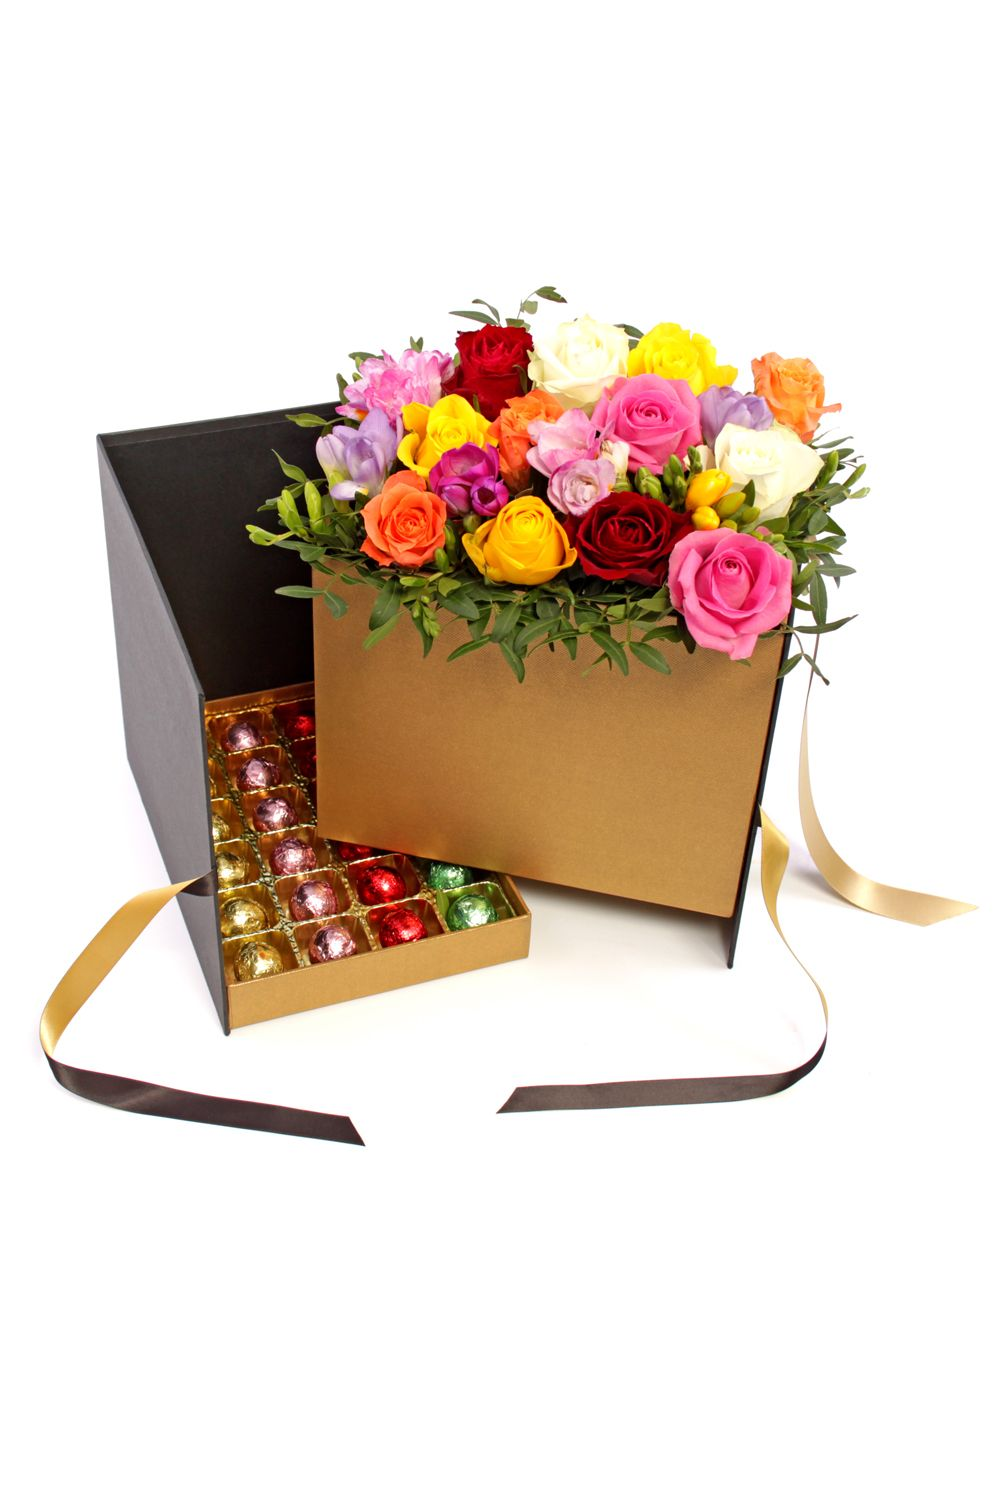 Floric Floric Luxury Chocolate Hamper With Fresh Flowers